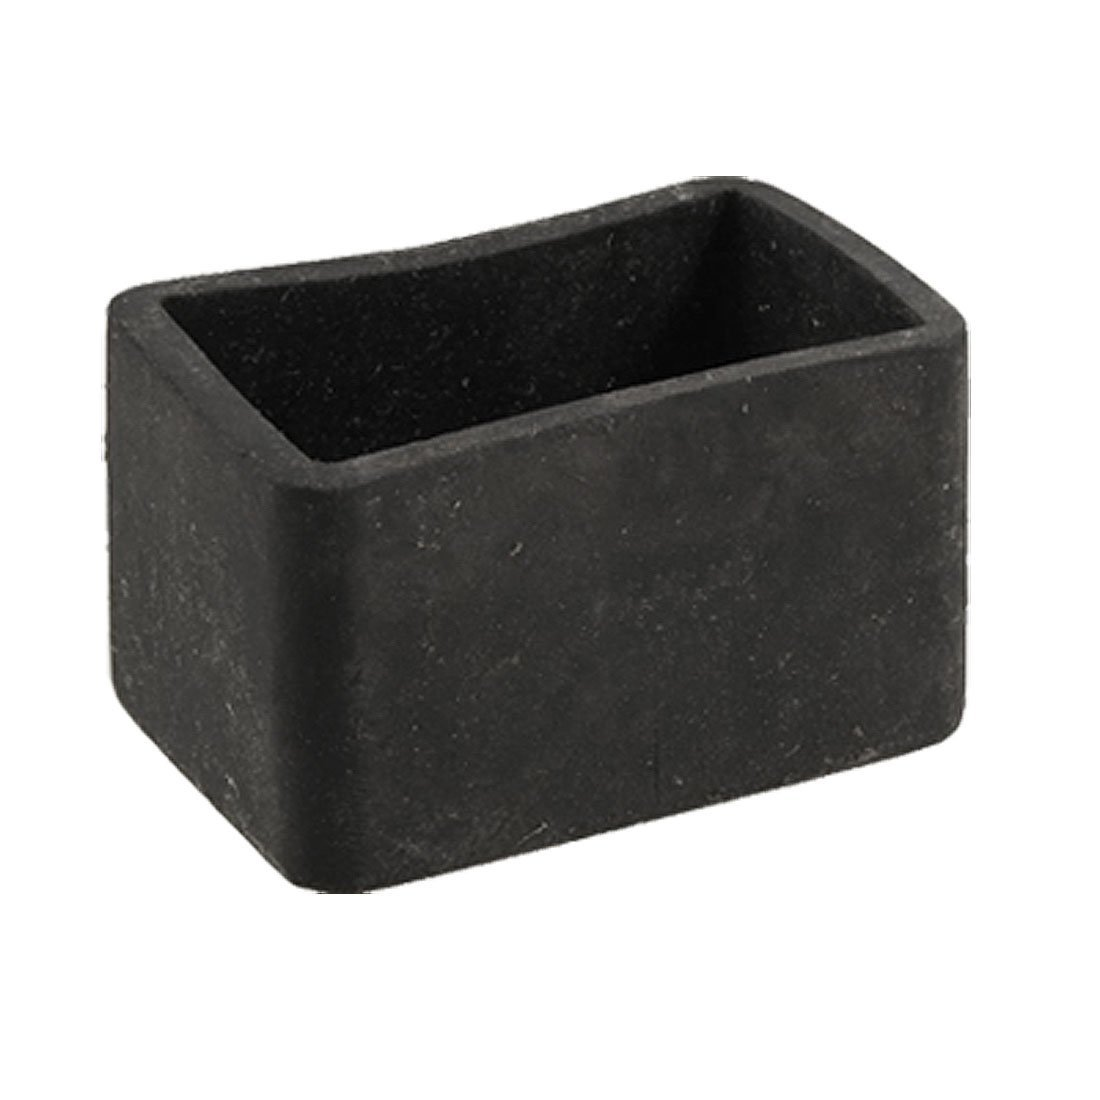 GSFY-Table Chair Leg Black Rubber Rectangle 25mm x 38mm Protective FootGSFY-Table Chair Leg Black Rubber Rectangle 25mm x 38mm Protective Foot